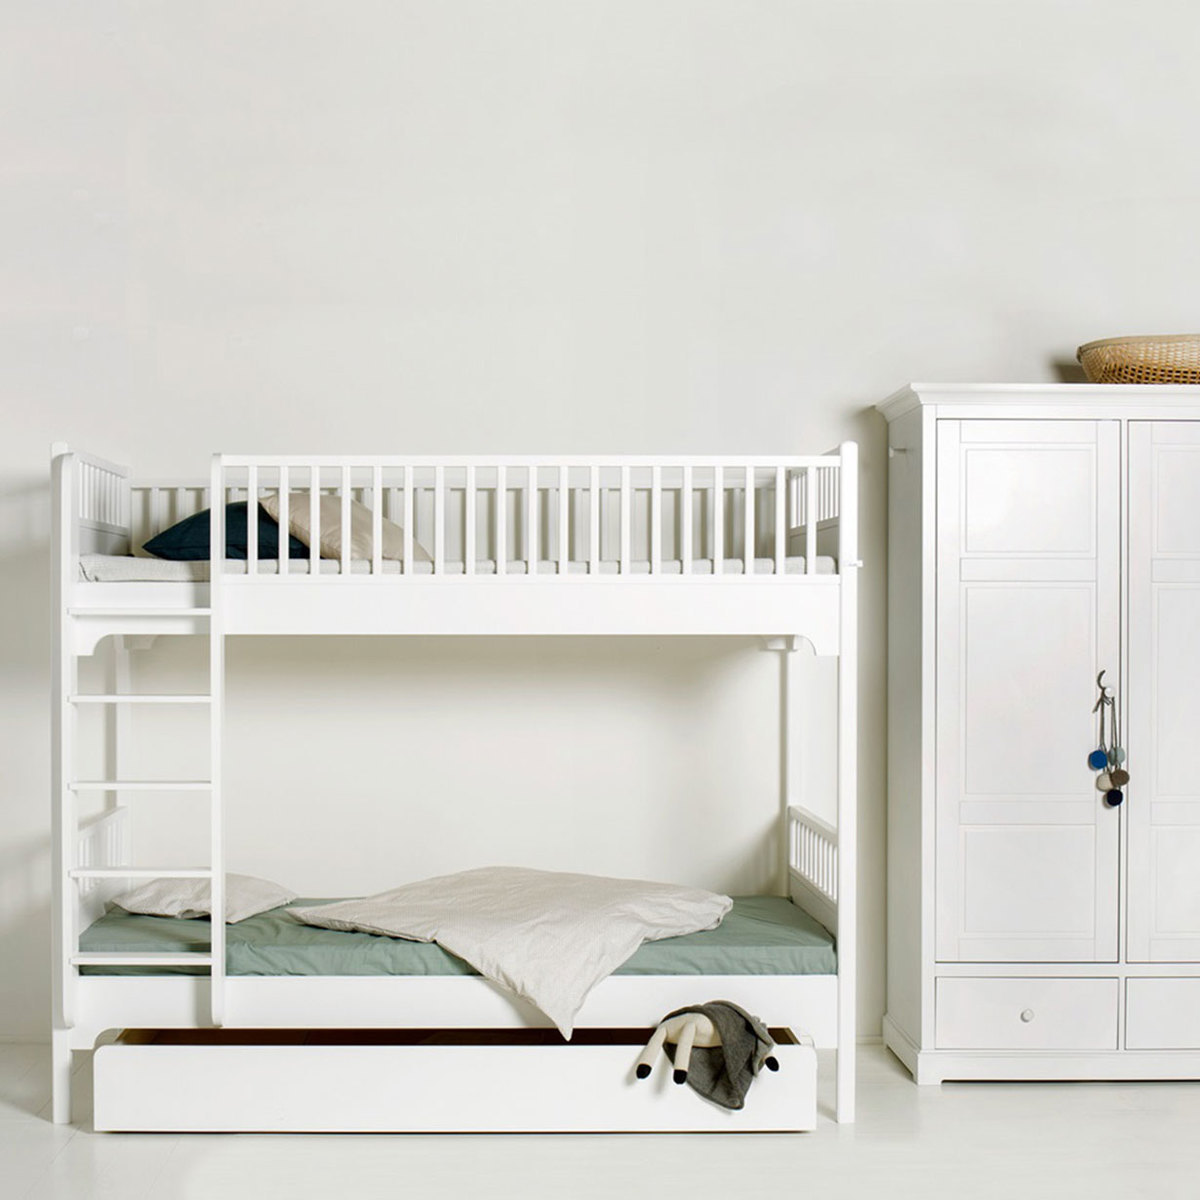 redesigning the boys bedroom - bunk bed